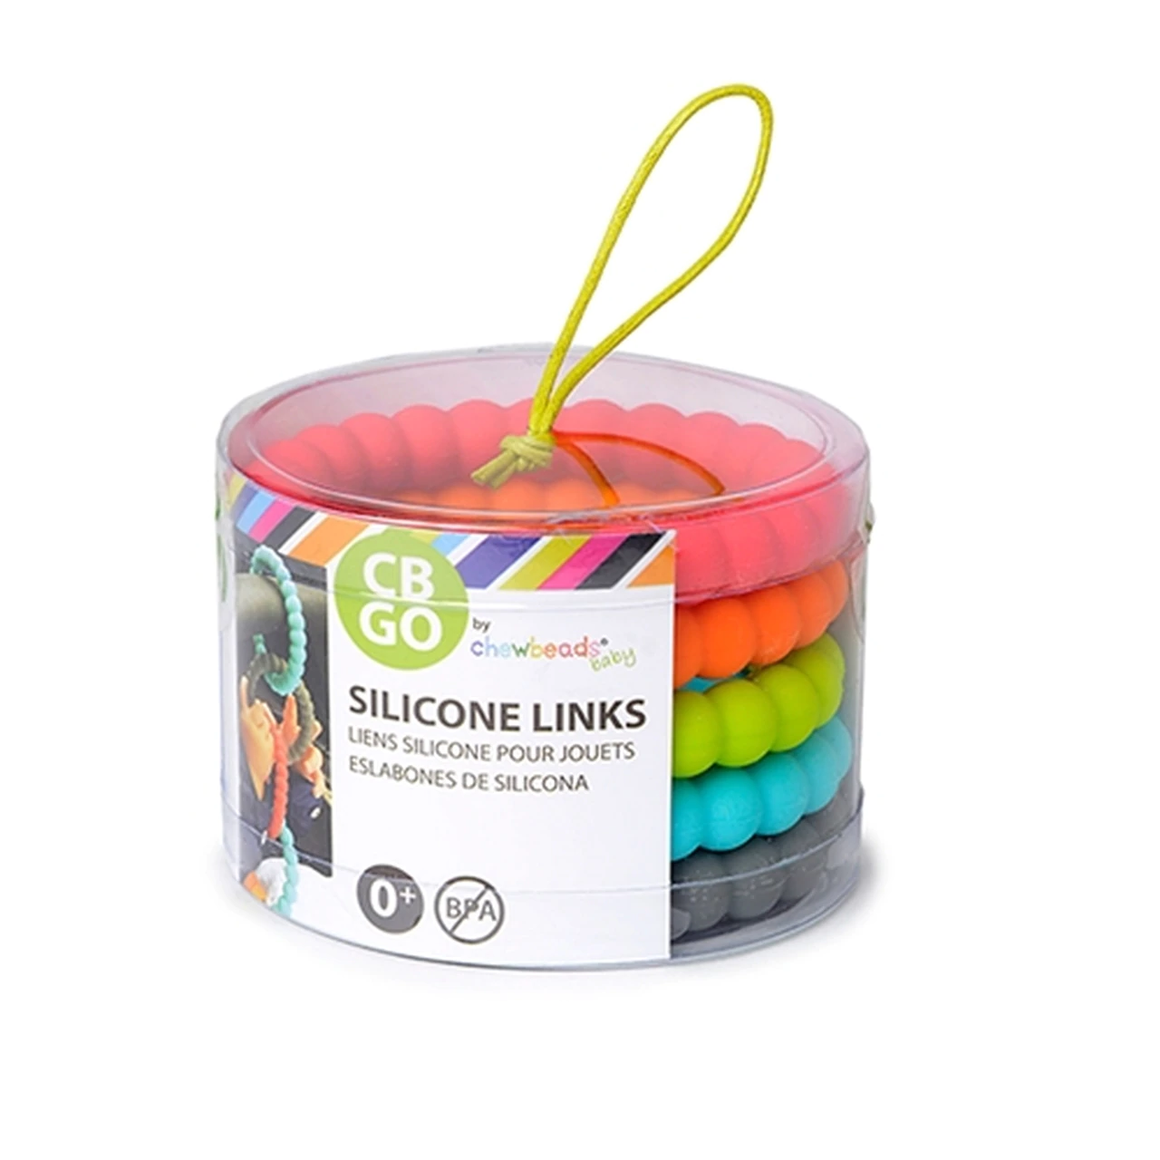 Chewbeads Silicone Links